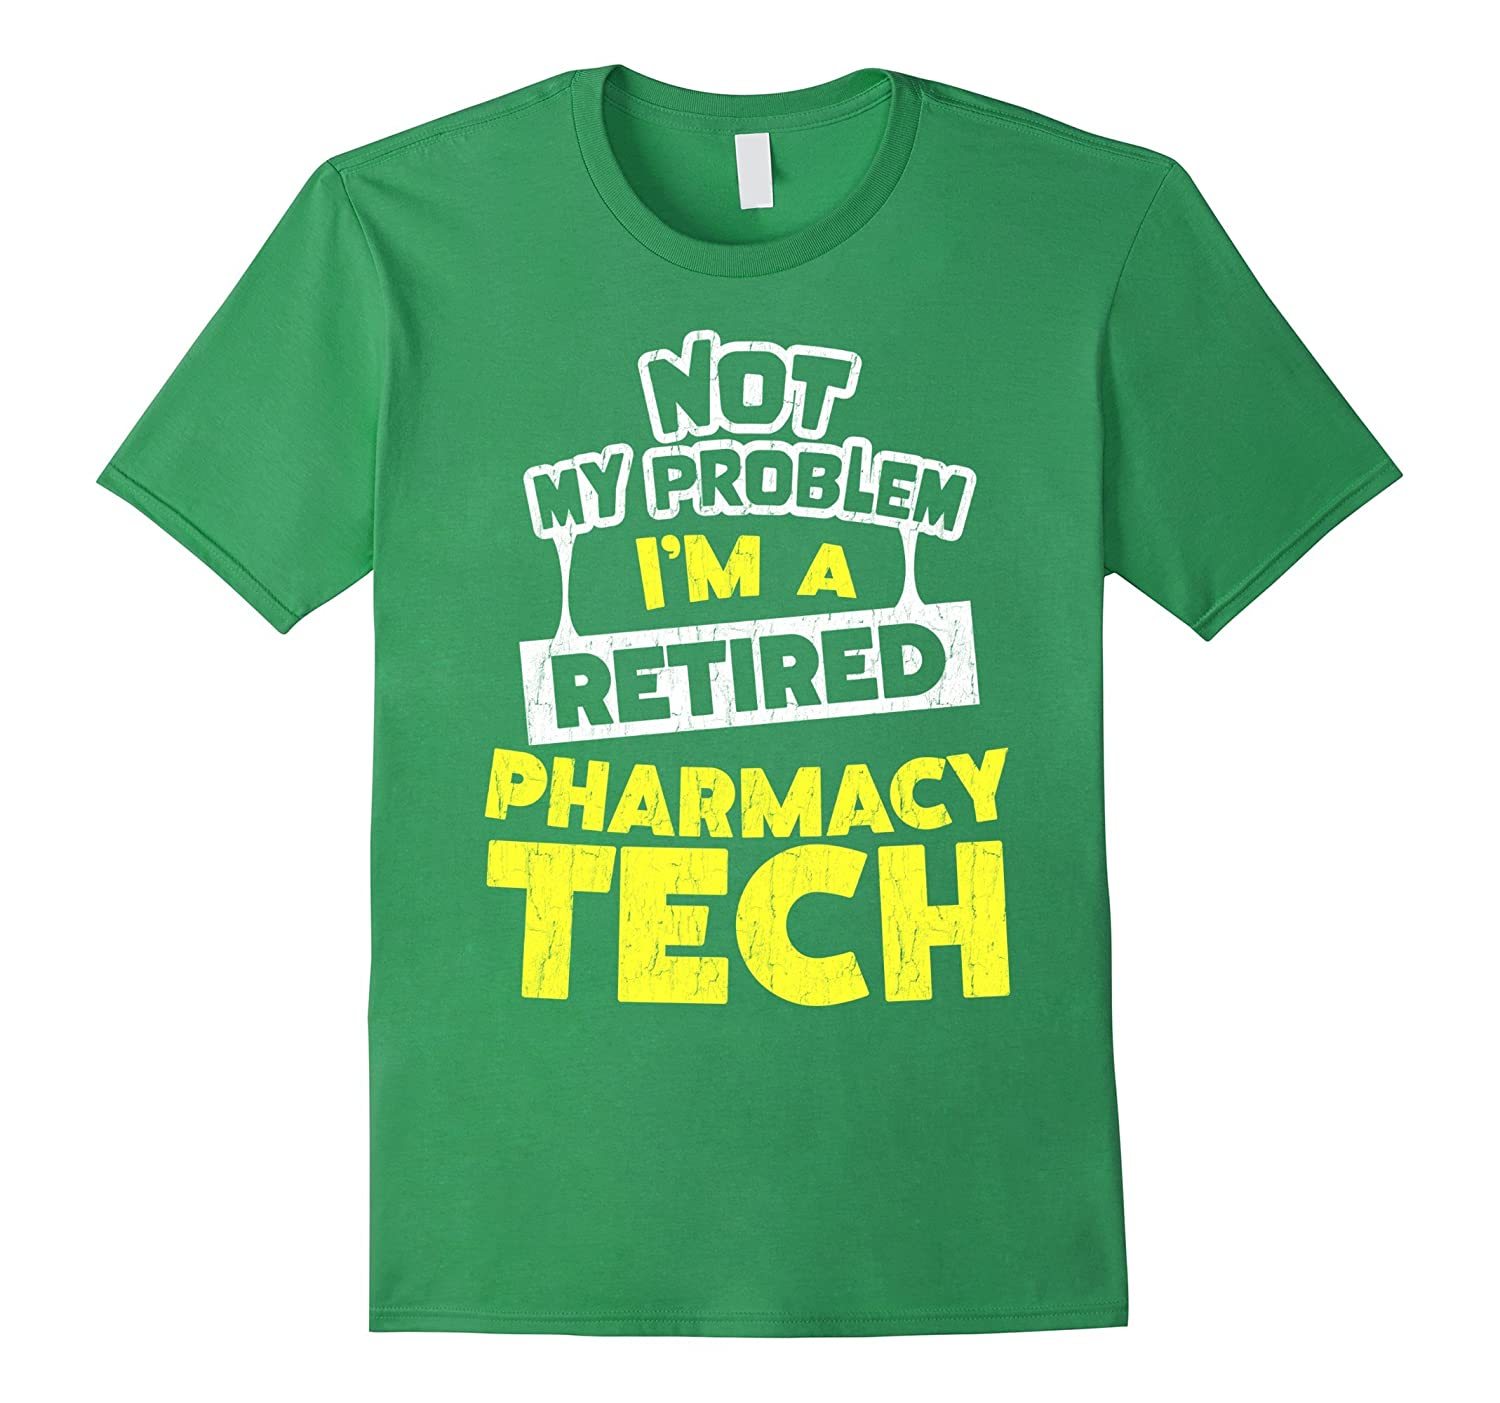 Pharmacy Tech Retirement Gift Idea T-Shirt